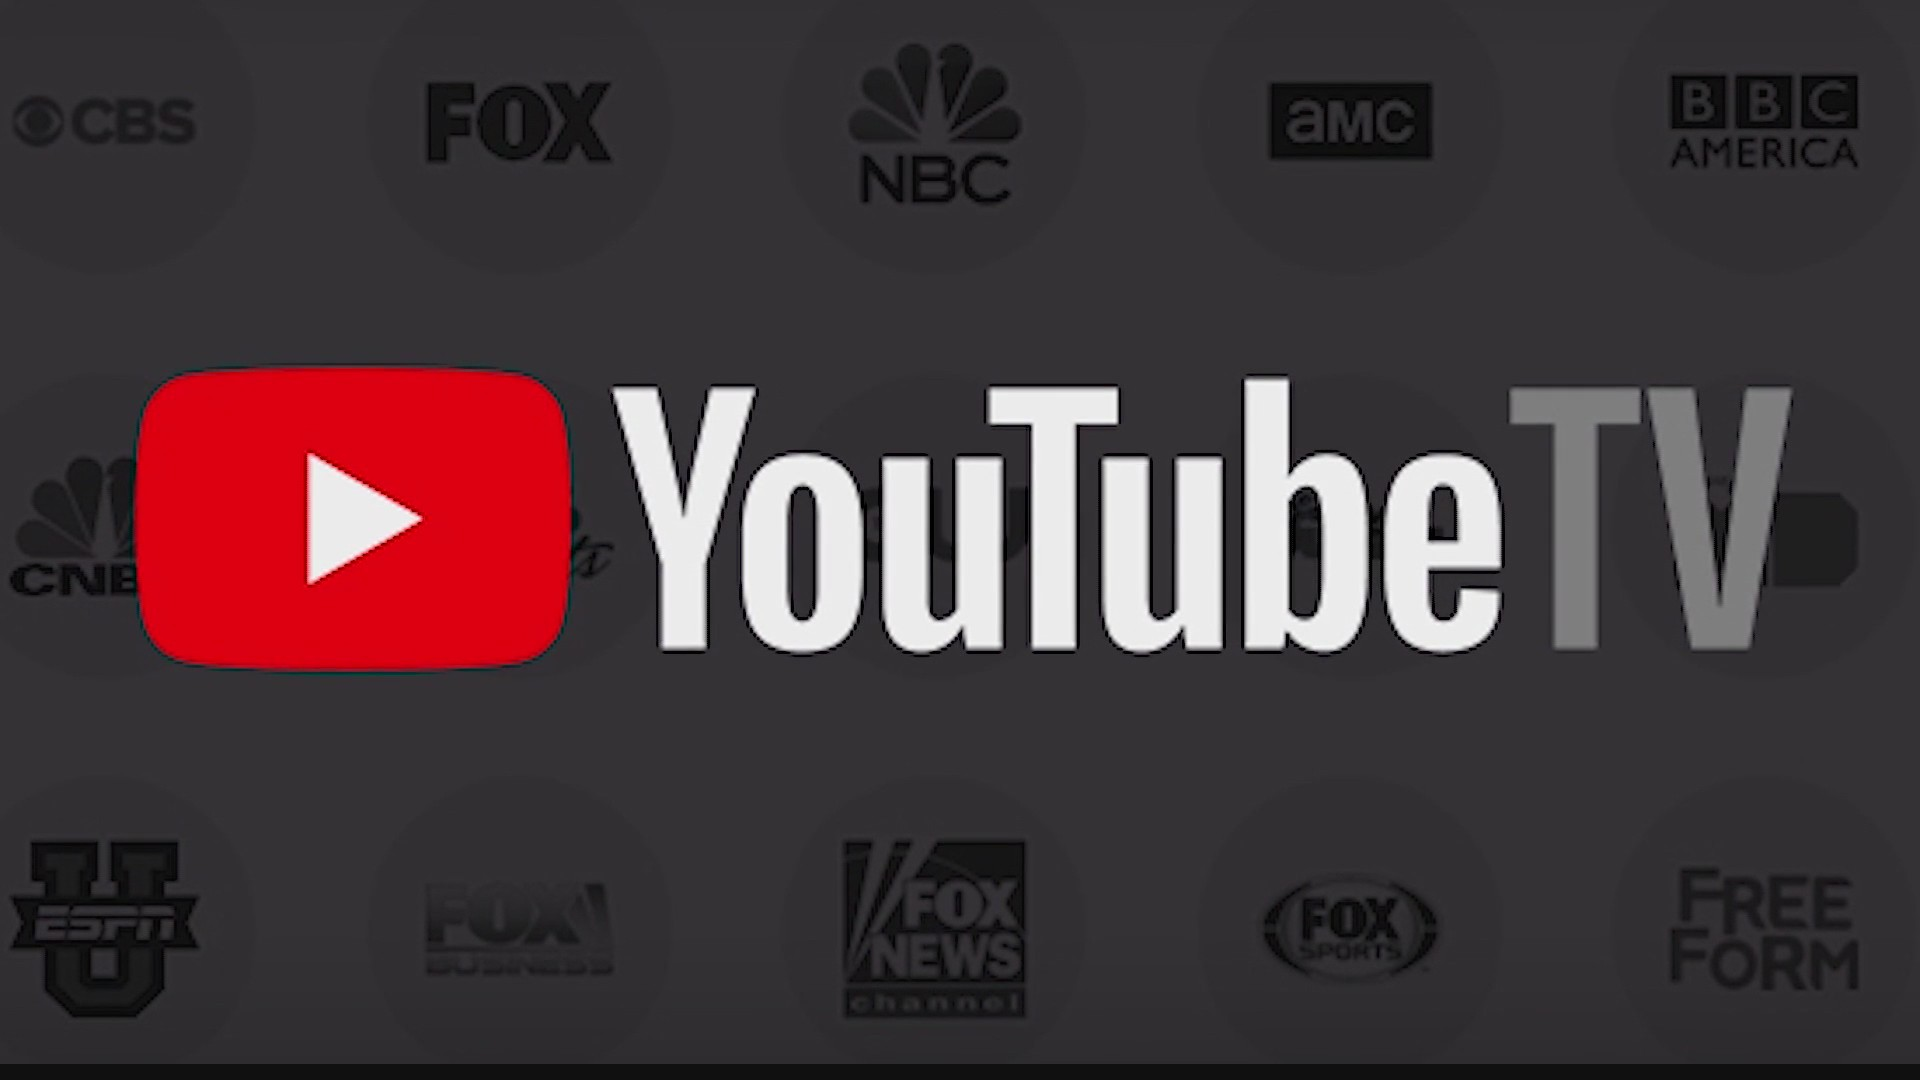 YouTubeTV_now_available_in_our_area_0_20190124233426